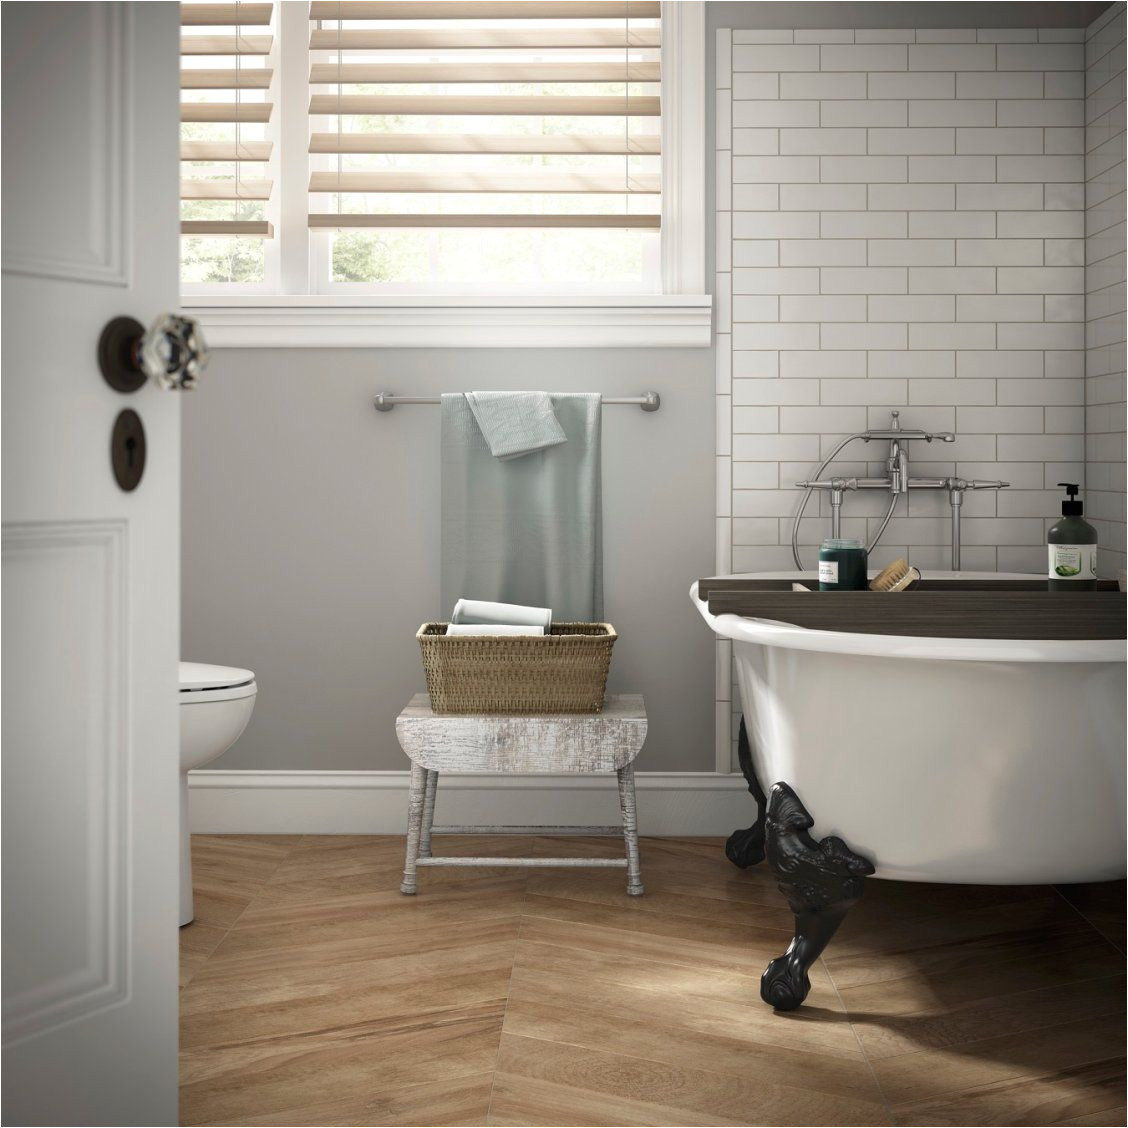 Clawfoot Tub Bathroom Ideas Create A Spa Like Bathroom with soft Gray Walls A Clawfoot Tub